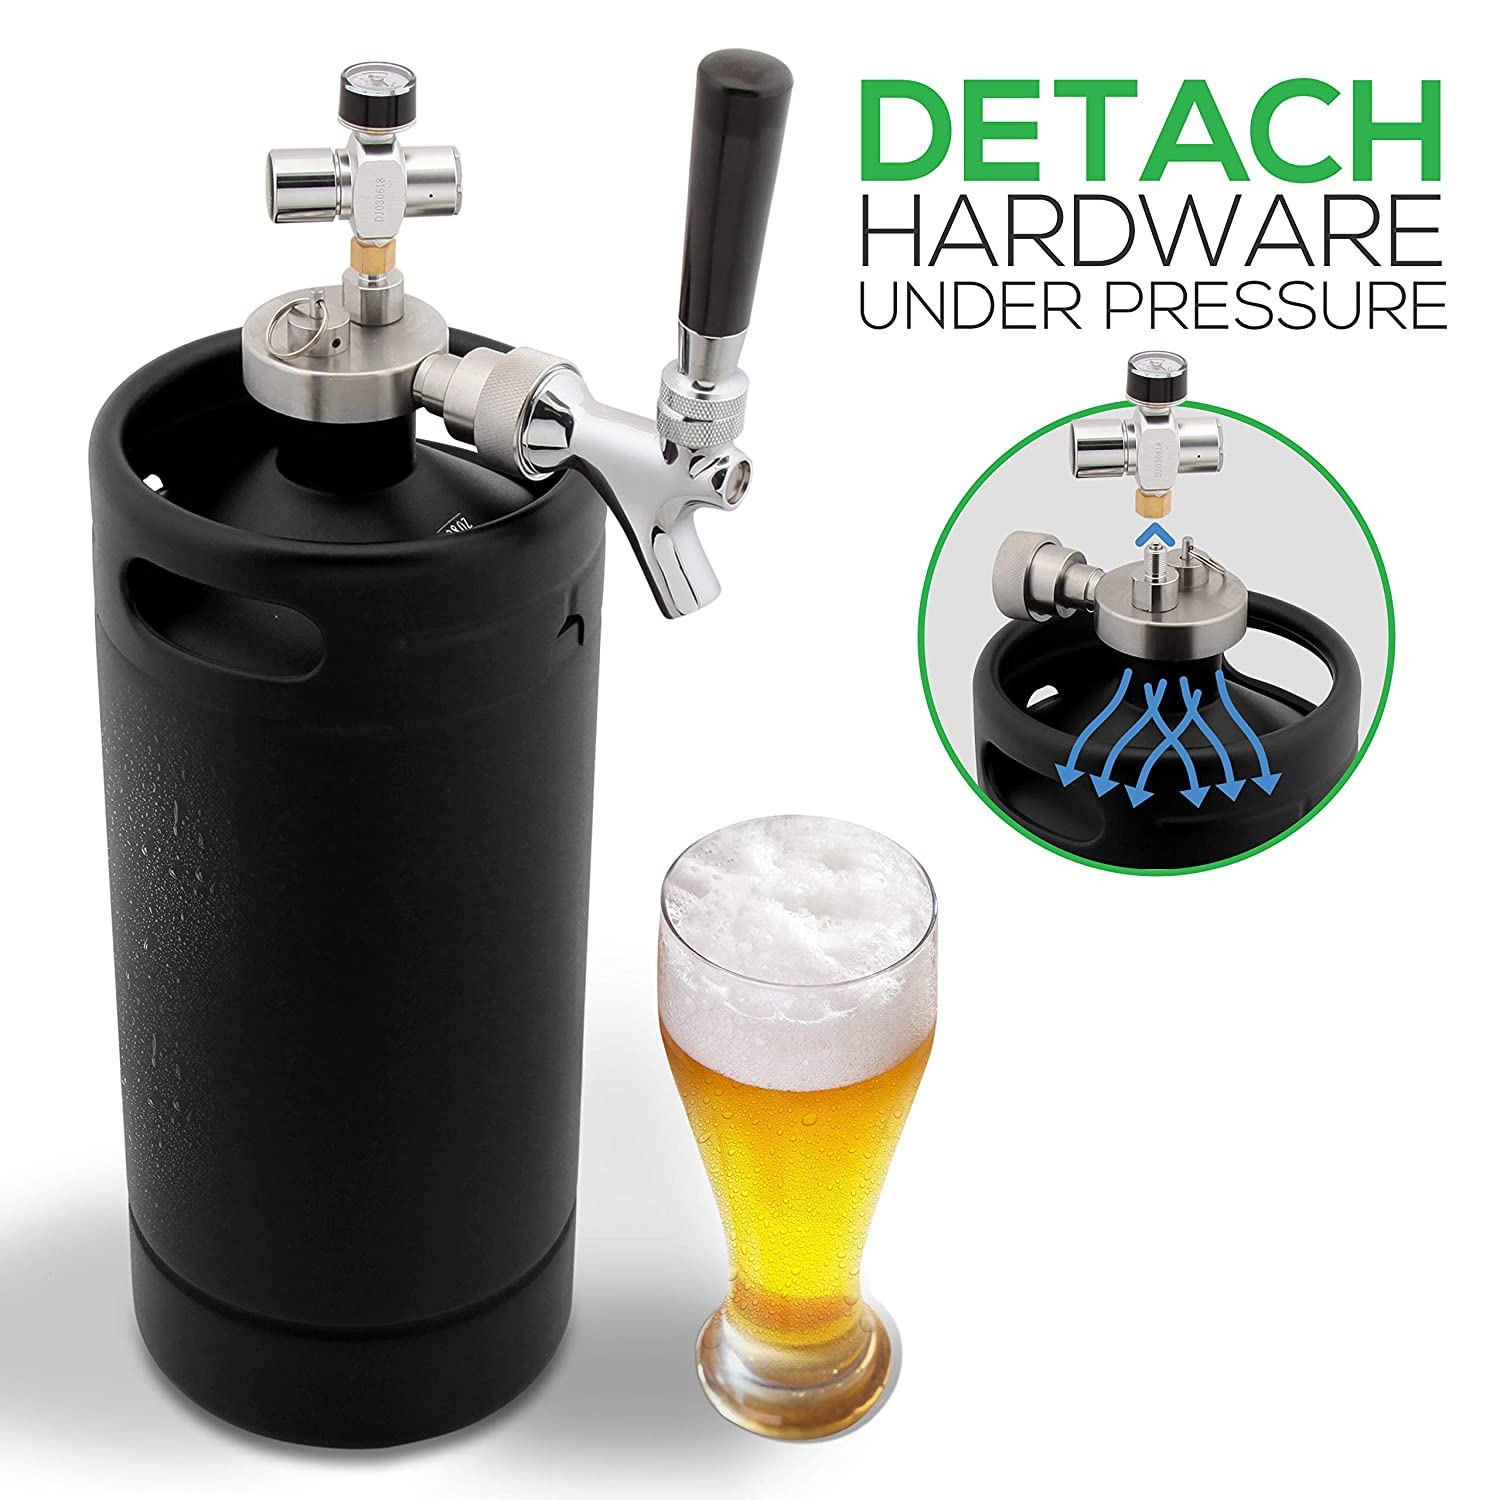 NutriChef PKBRTP110 Mini Keg Beer Growler-Detachable Aluminum Regulator & Spout Easy Storage Under Pressure, Black Matte Powder Coated 128oz Press, Medium